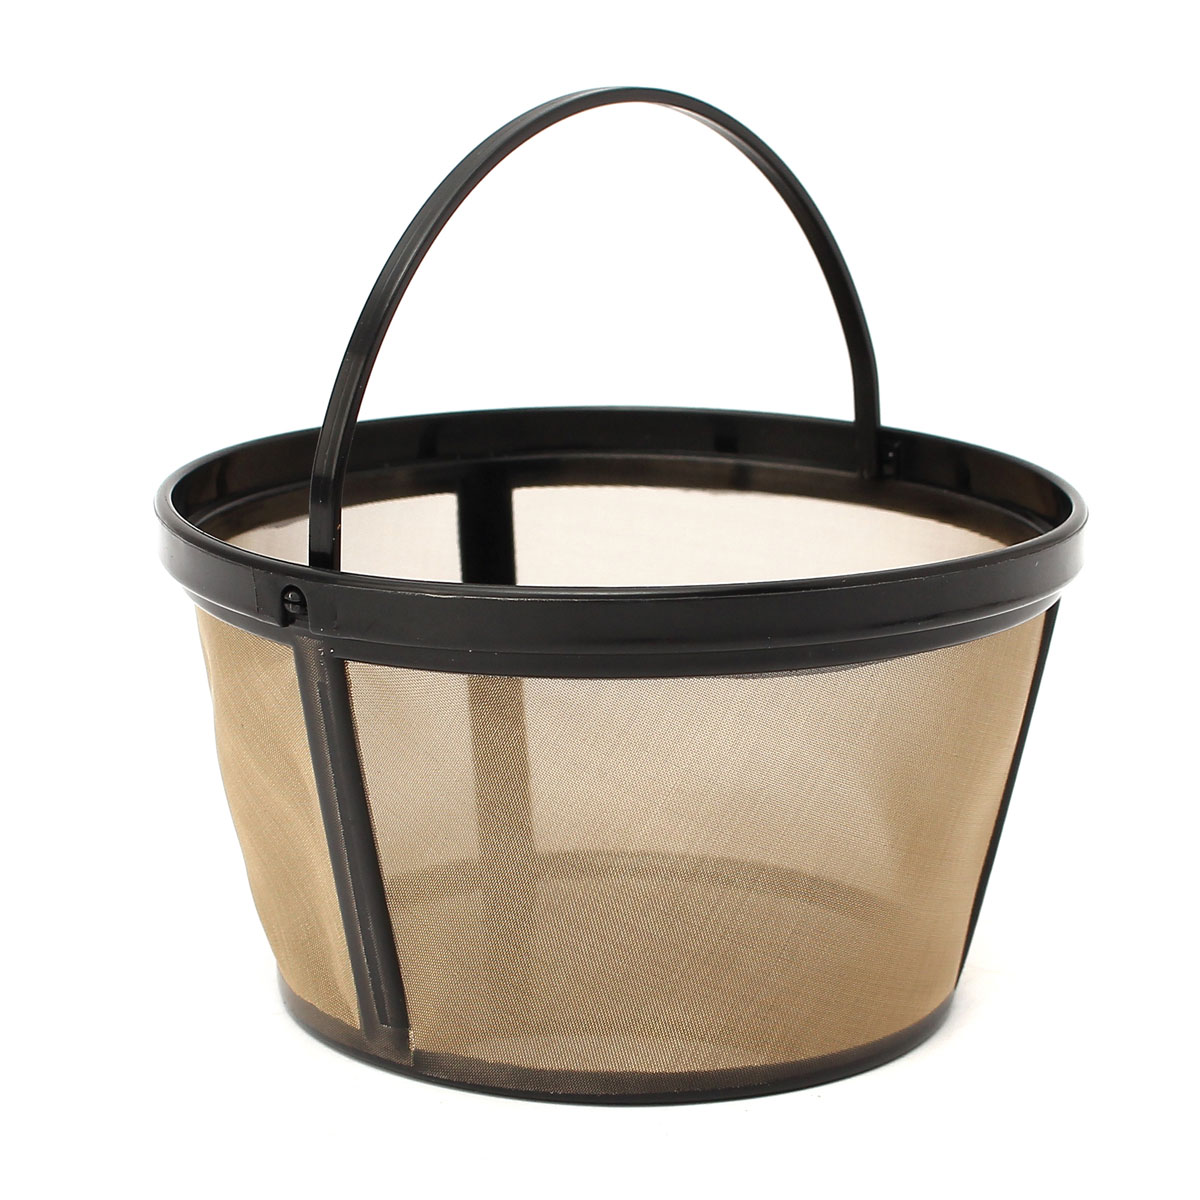 Reusable Gold Coffee Filter Basket for 10-12 Cup Coffee Maker Making Machine